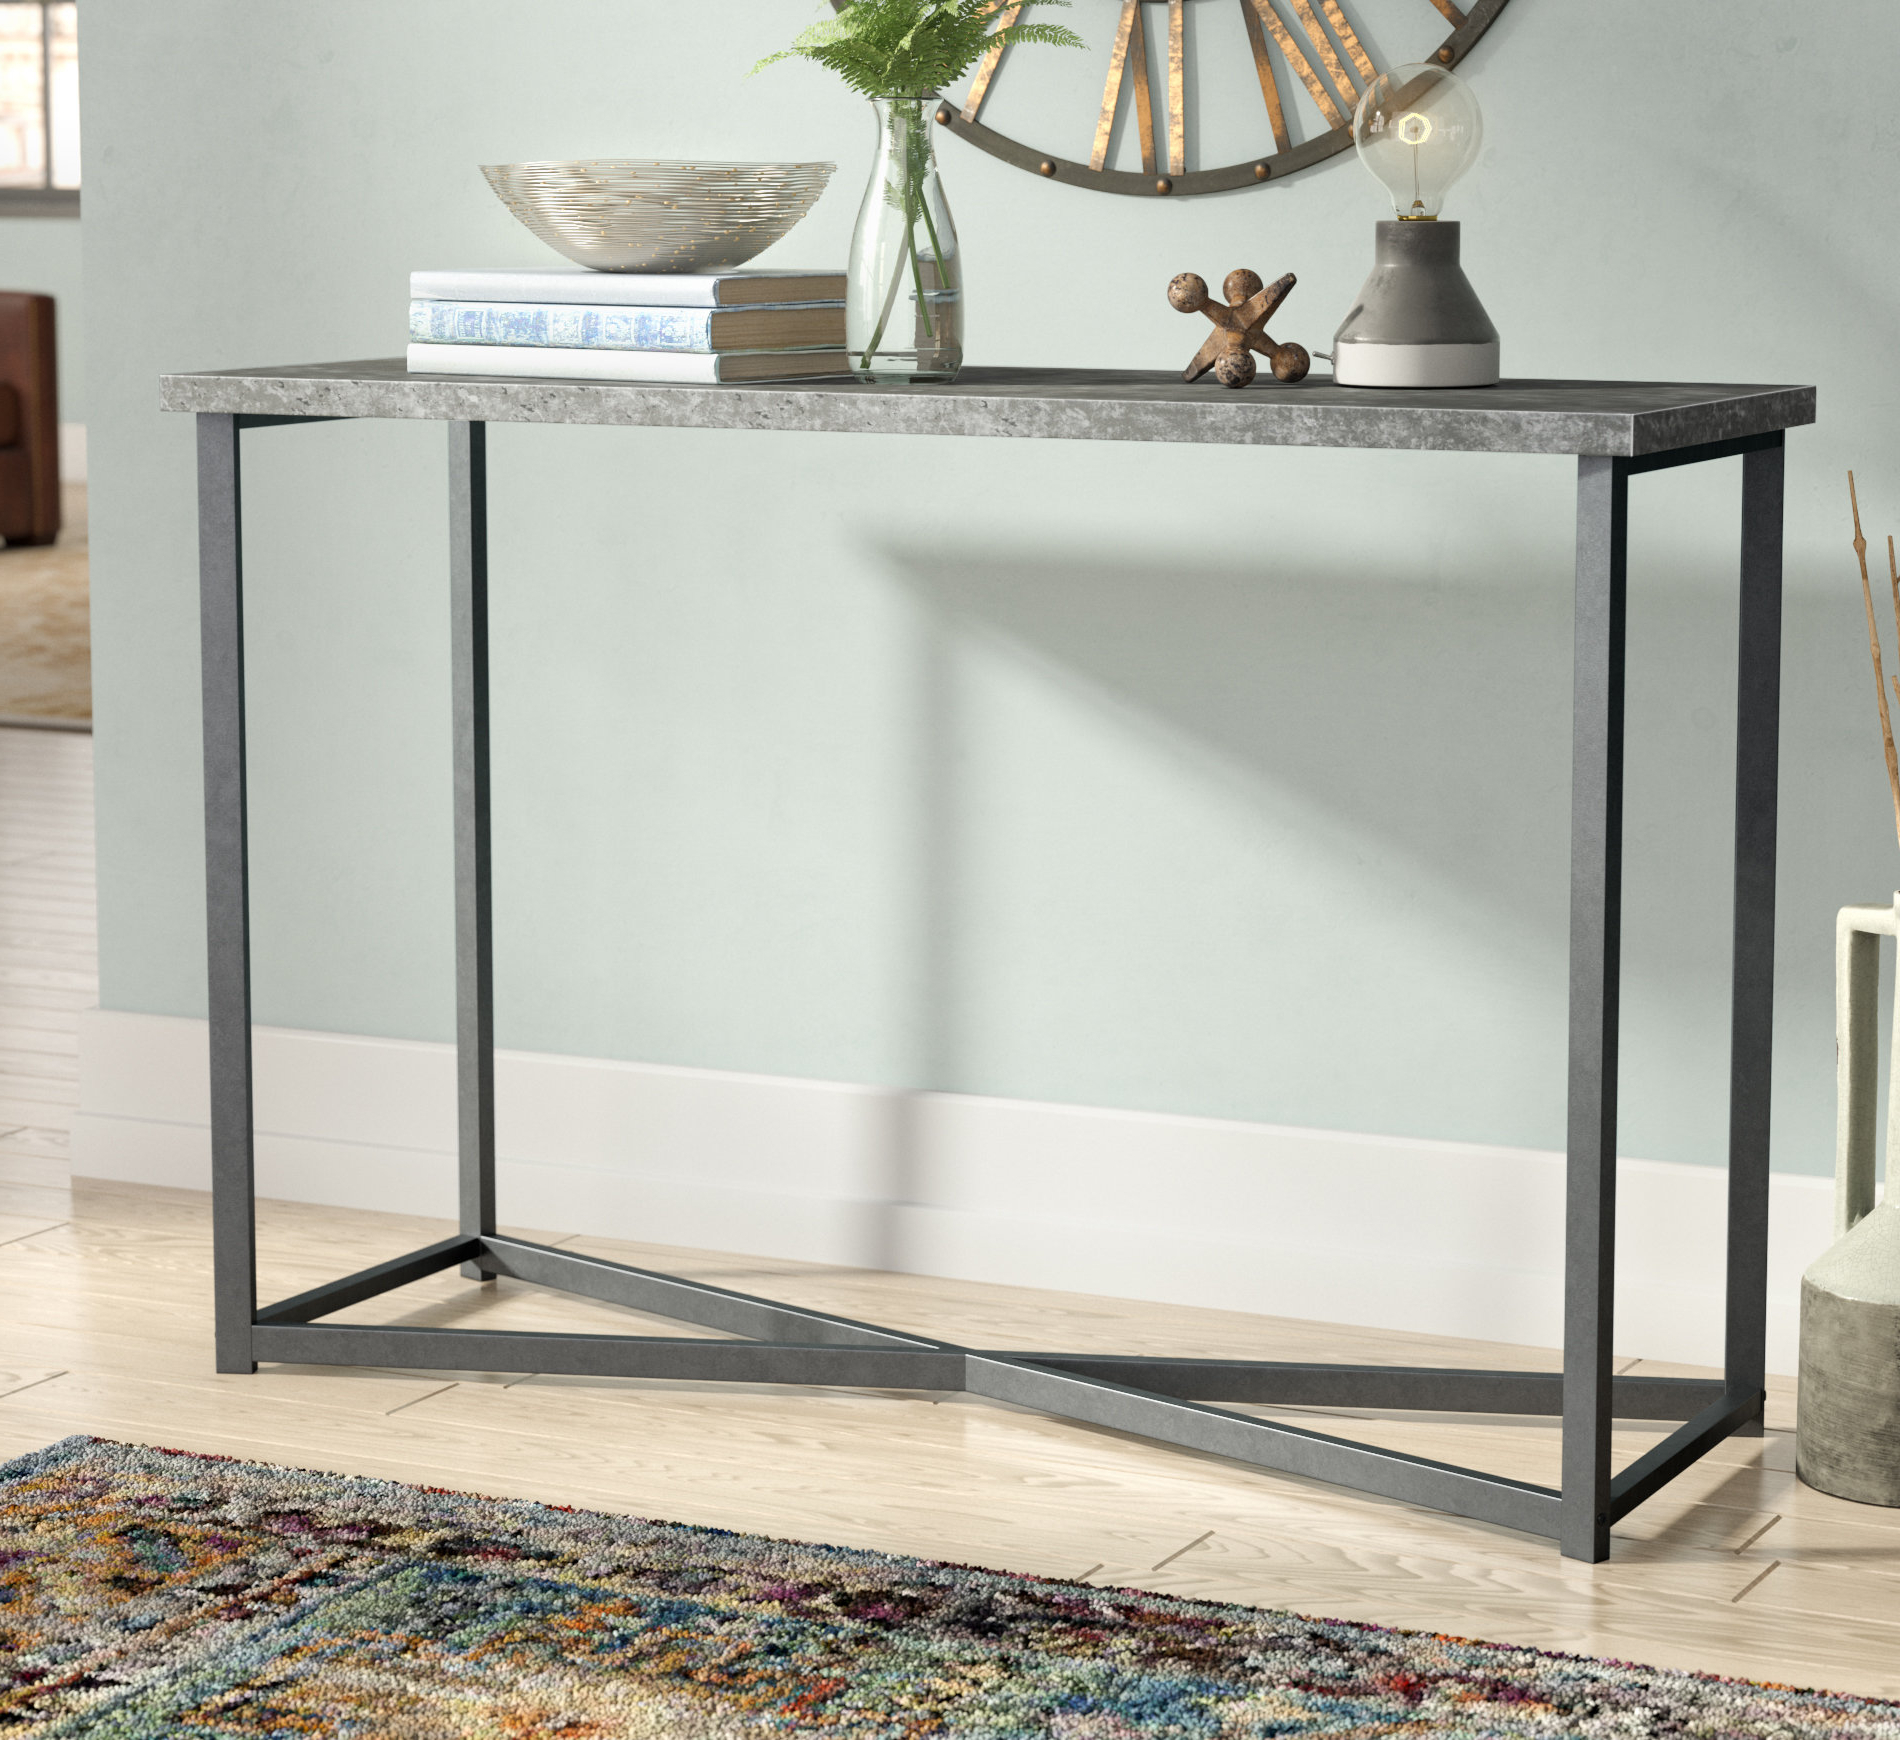 Parsons Clear Glass Top & Dark Steel Base 48X16 Console Tables With Regard To Latest Industrial Console Tables You'll Love (View 6 of 20)